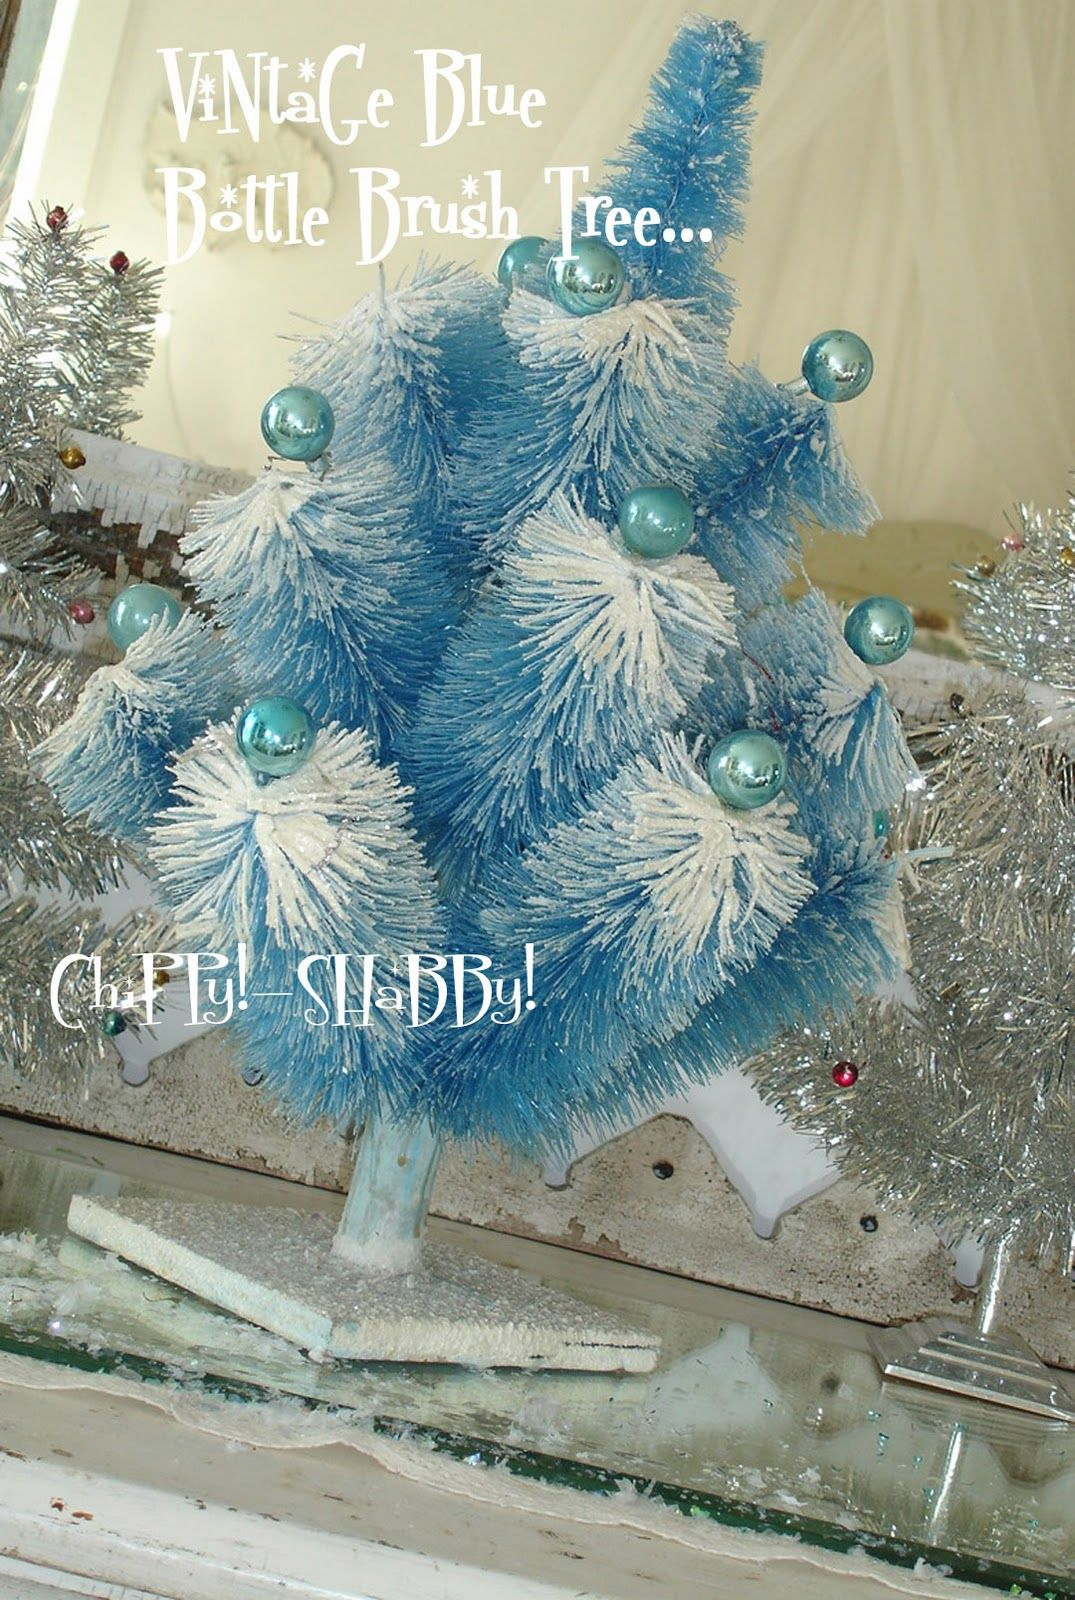 Time To Think Vintage Christmas Chippy Shabby Style Vintage Christmas Vintage Holiday Decor Christmas Romance